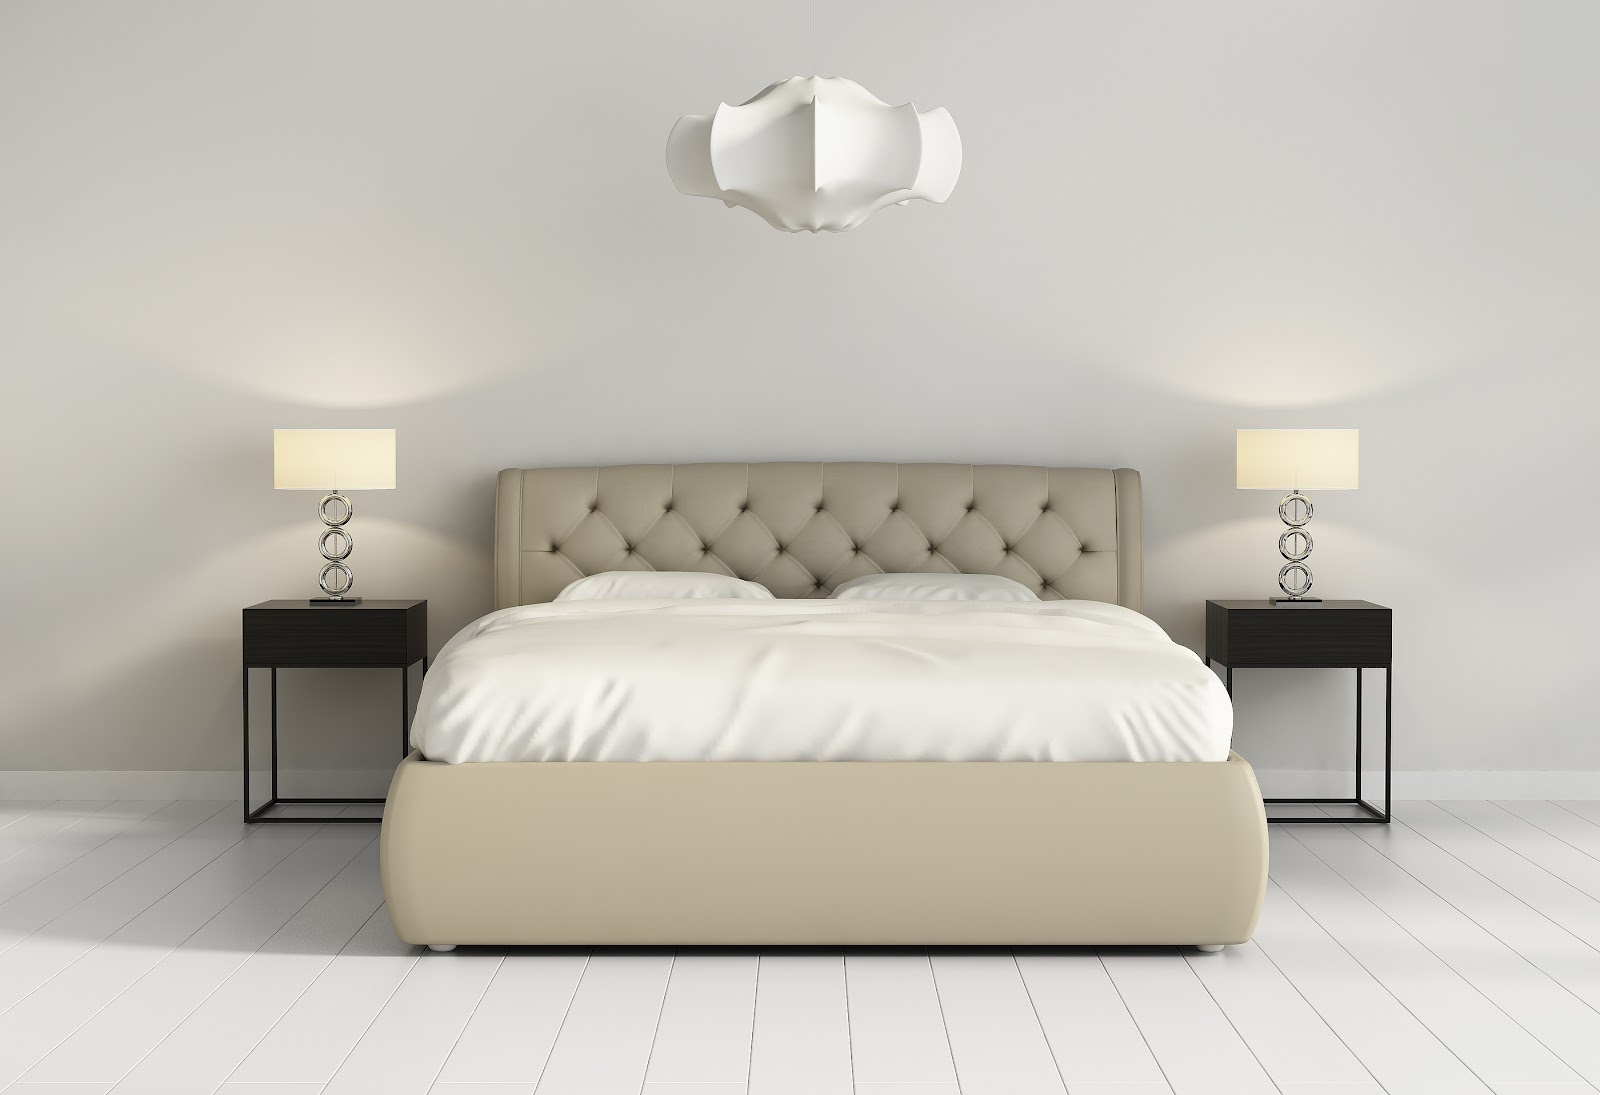 bigstock-Chic-tufted-leather-bed-in-con-44588629.jpg